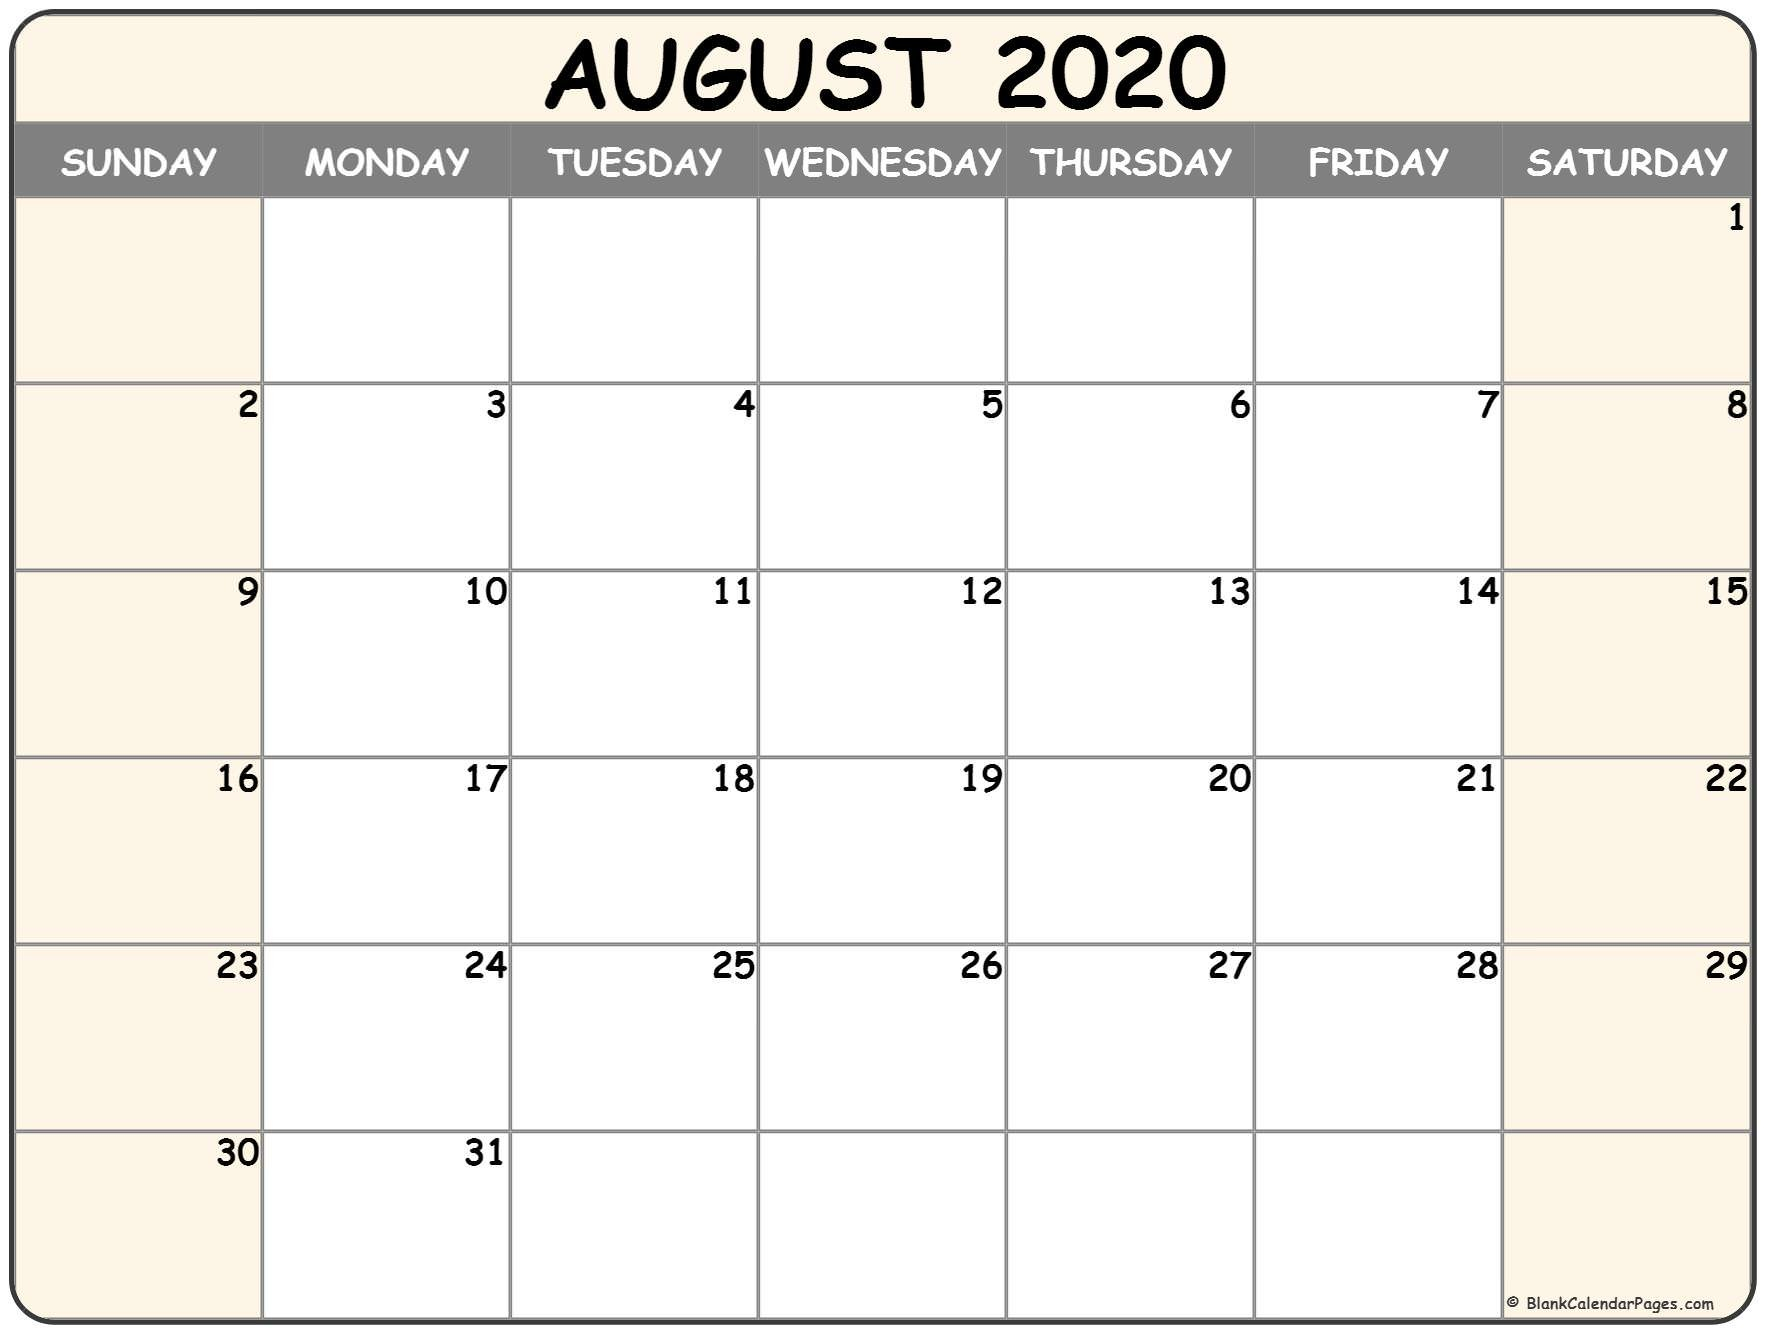 August 2020 Calendar | Free Printable Monthly Calendars Free Blank Calendar Page